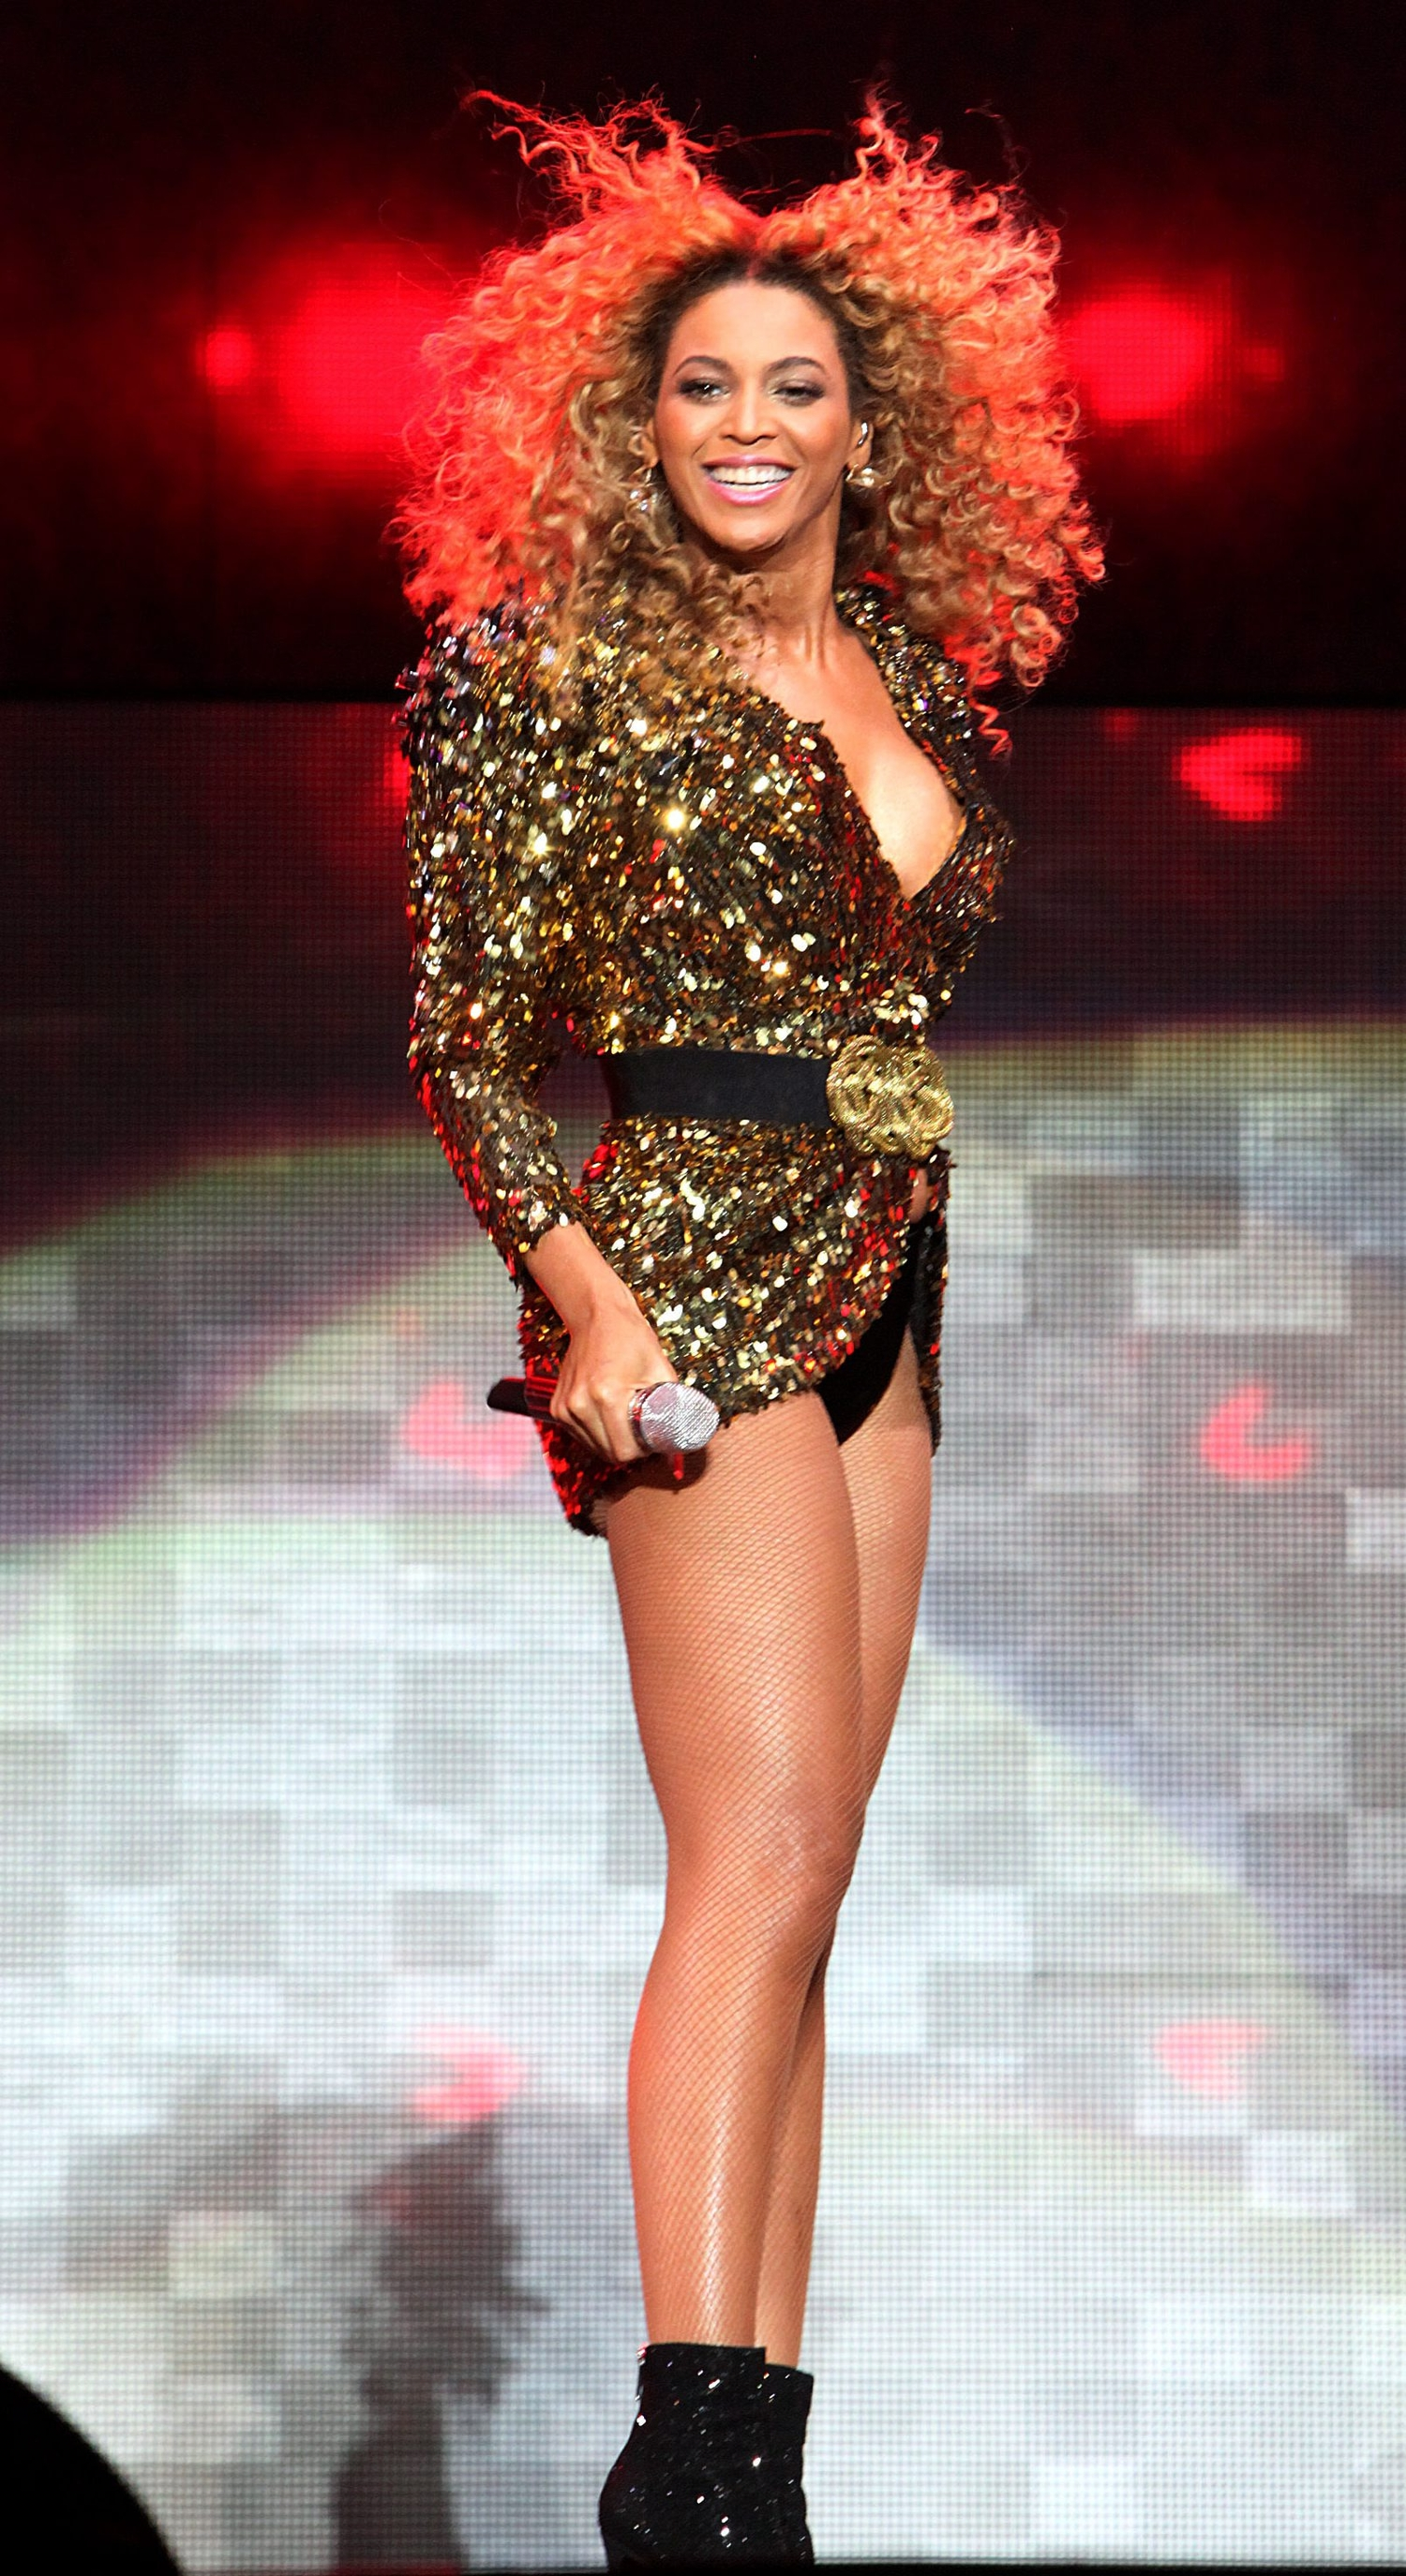 Beyonce Performs At The 2011 Glastonbury Festival 11